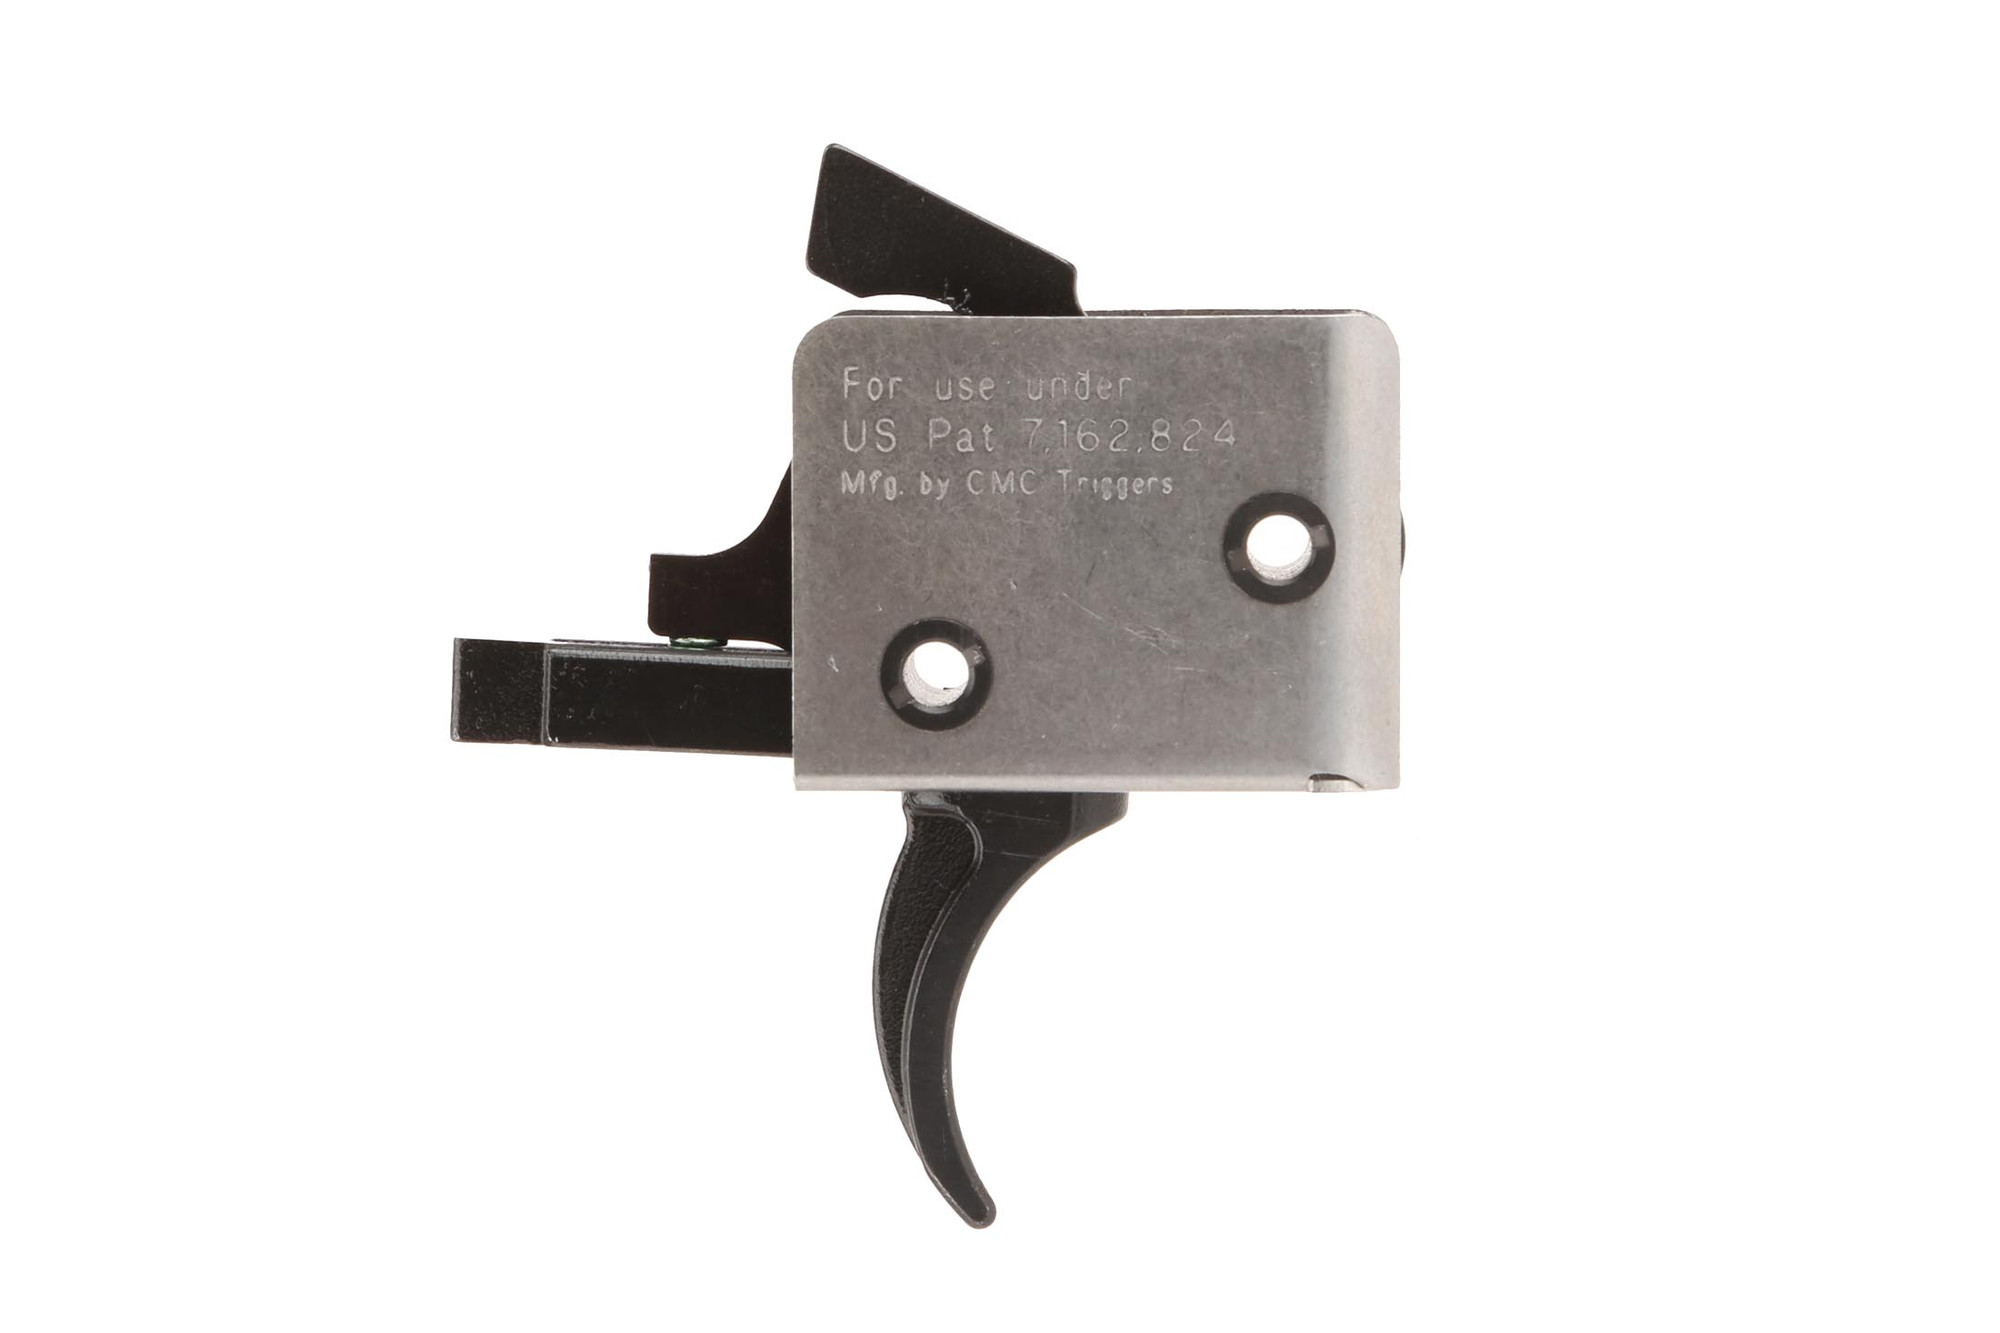 cmc-ar-15-ar-10-drop-in-single-stage-3-5lb-curved-trigger-mil-spec-154cmc-ar-15-ar-10-drop-in-single-stage-3-5lb-curved-trigger-mil-spec-154